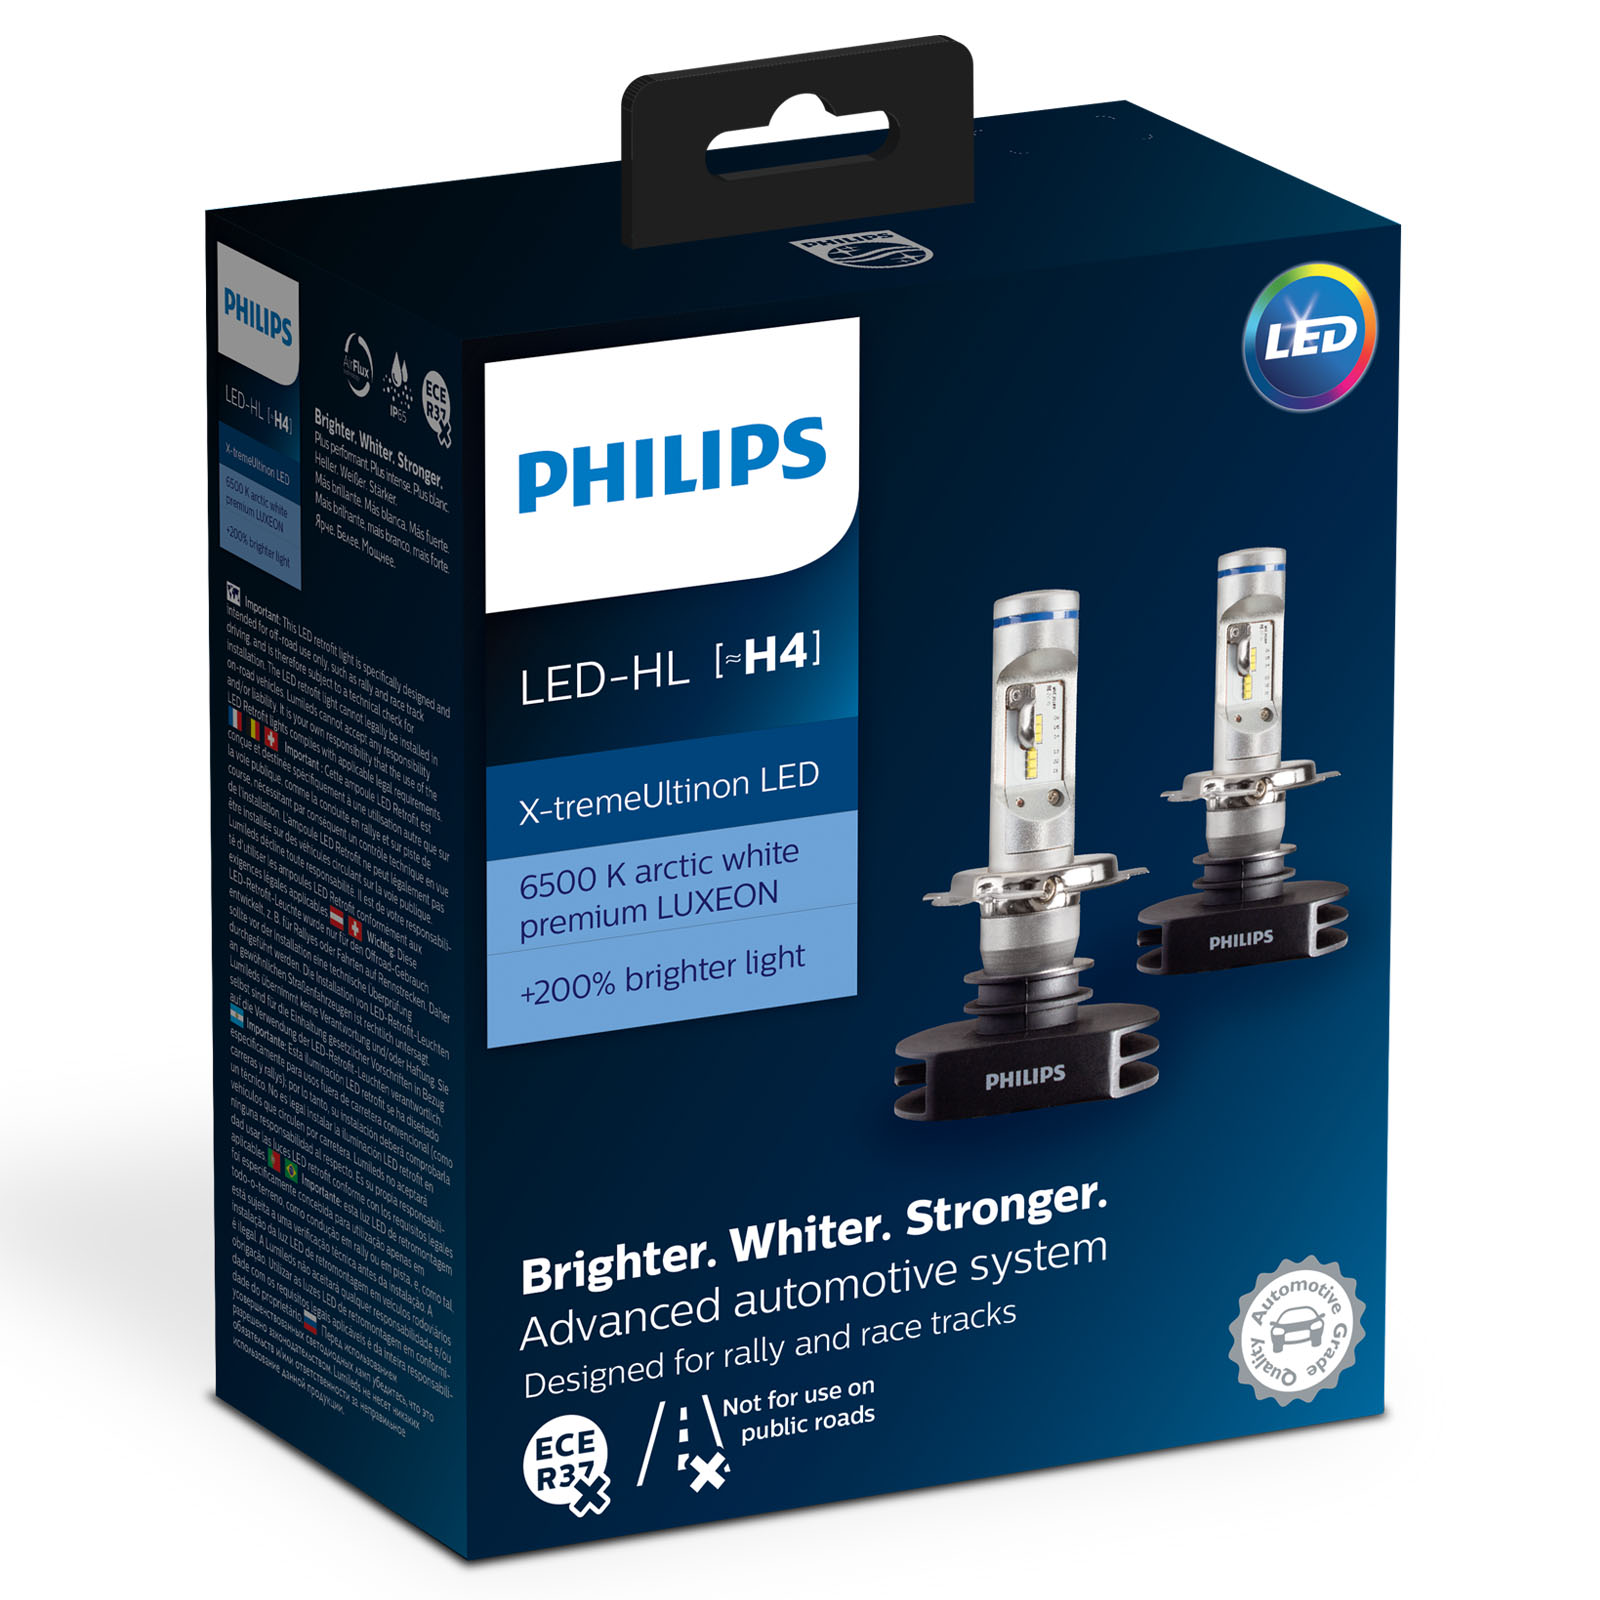 Philips-X-treme-Ultinon-LED-Headlights-H4-H7-HB3-HB4-H8-H11-H16-Fittings